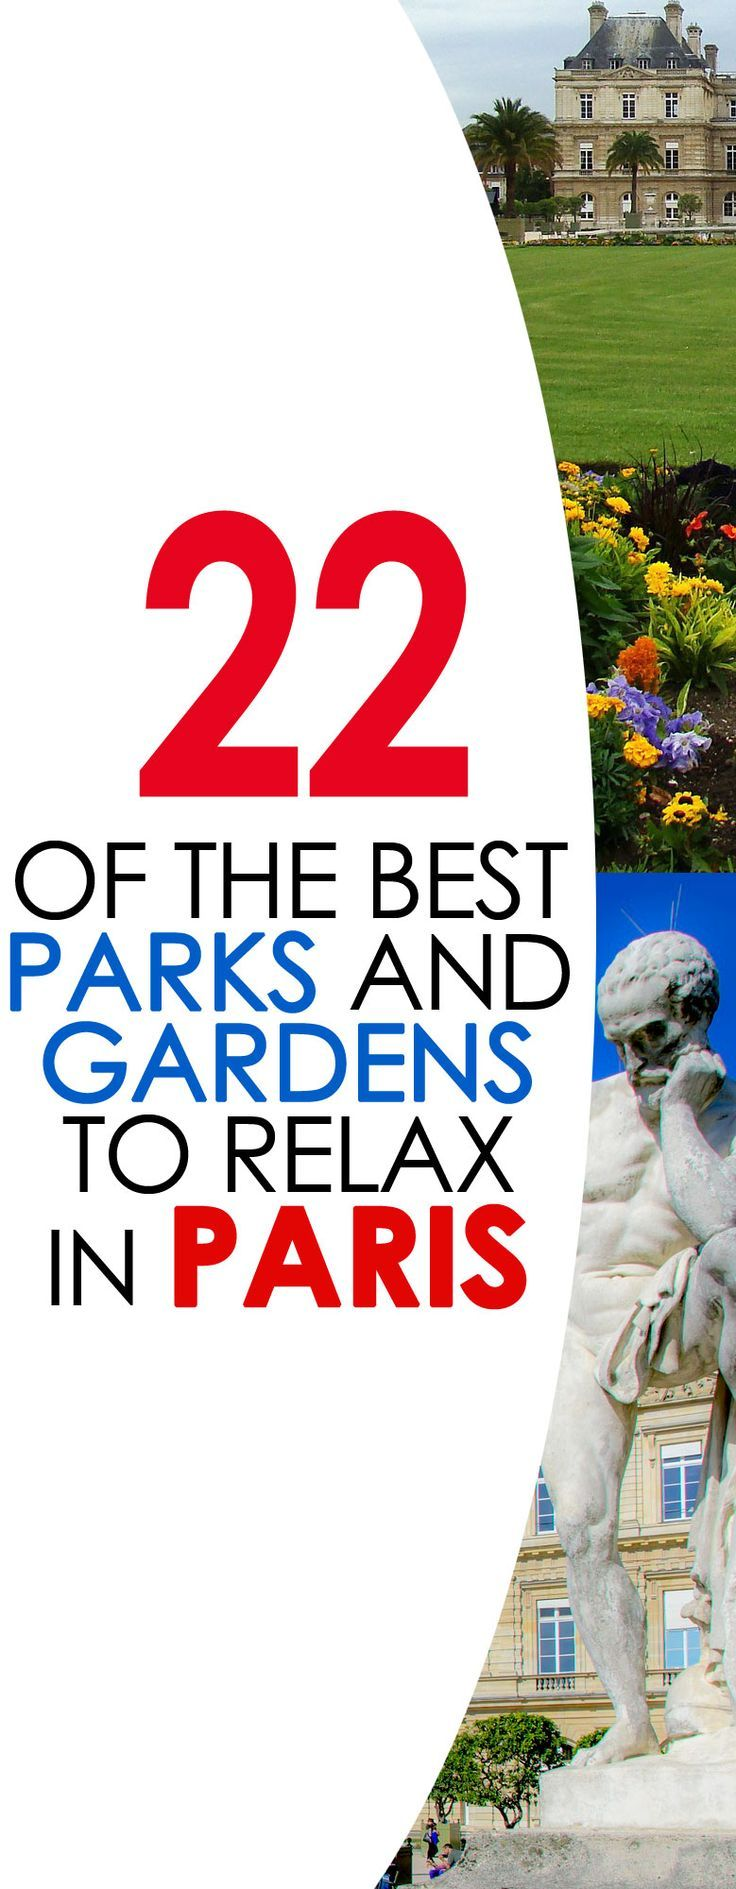 There is probably no better way to relax than sit in a beautiful park or garden in Paris, France and take in the fresh air and atmosphere...